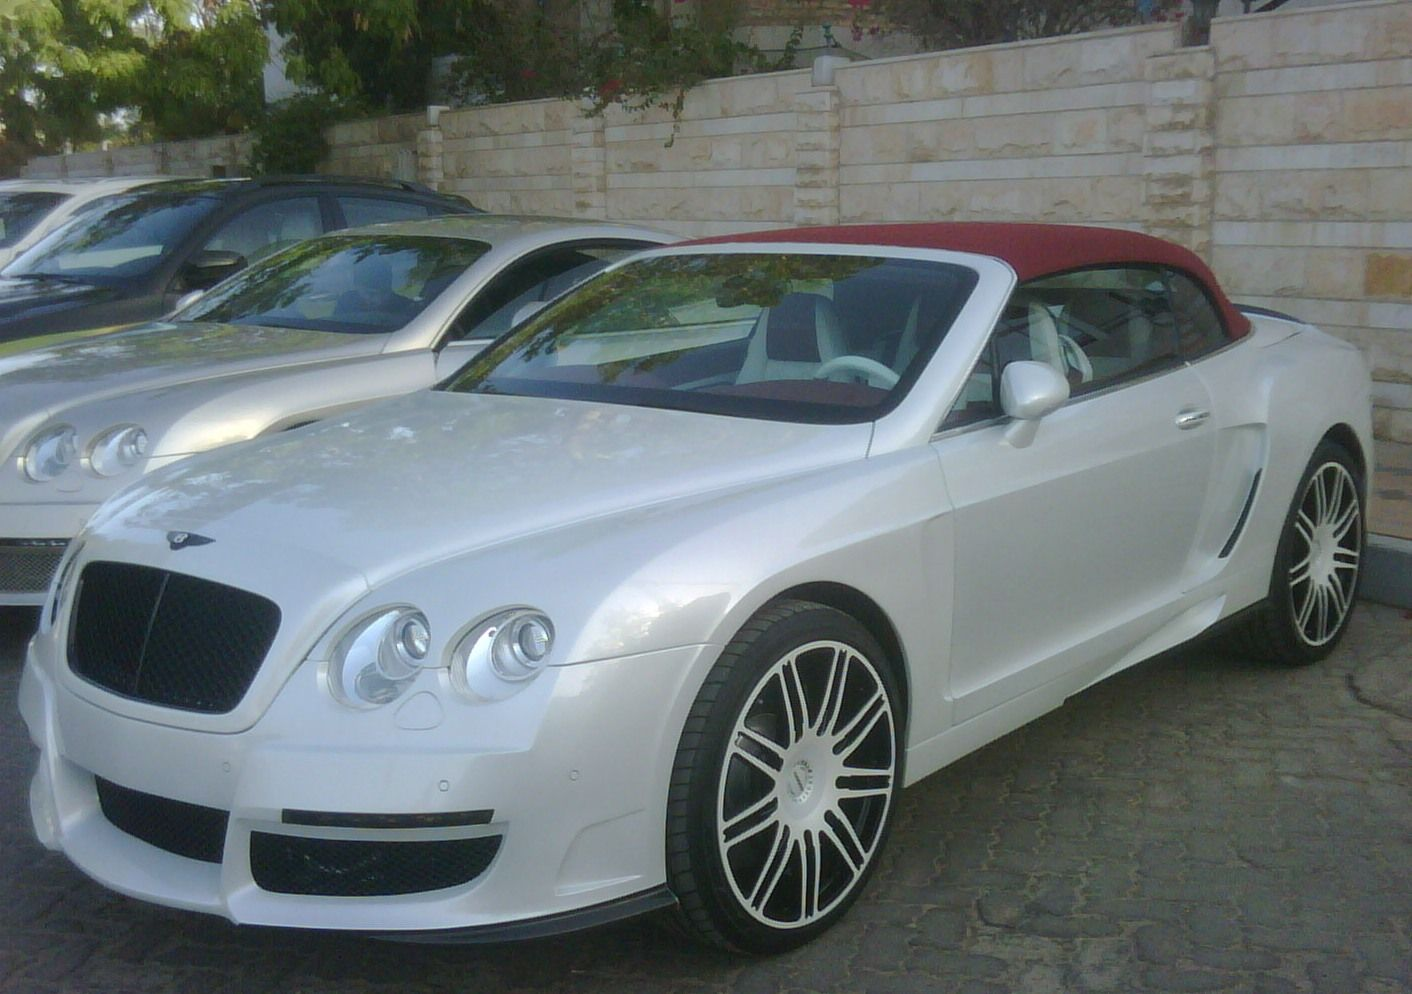 Hire Luxury Cars In Atlanta We Offer Perfect Collections Of Luxury Cars Like Bentley And Many More Http Milanirental Luxury Car Rental Luxury Cars Maserati